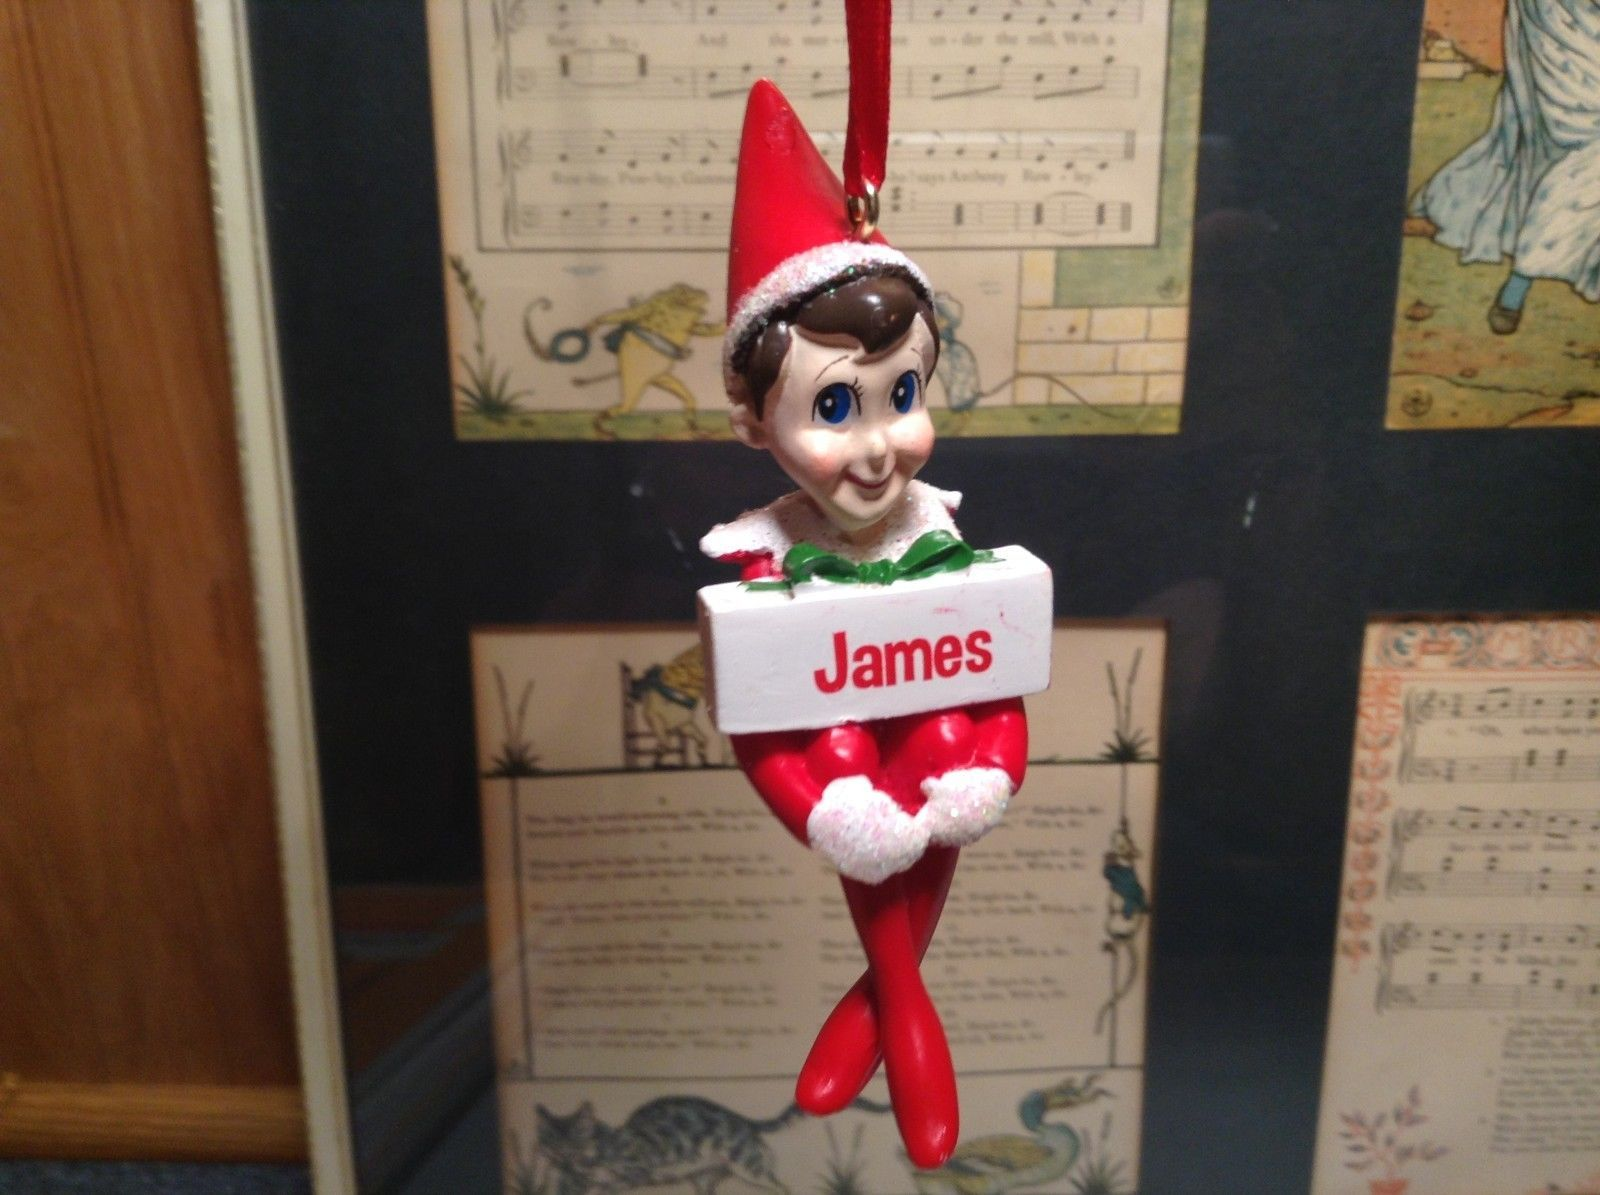 Dept 56 - Elf on the Shelf - James  banner Christmas Ornament